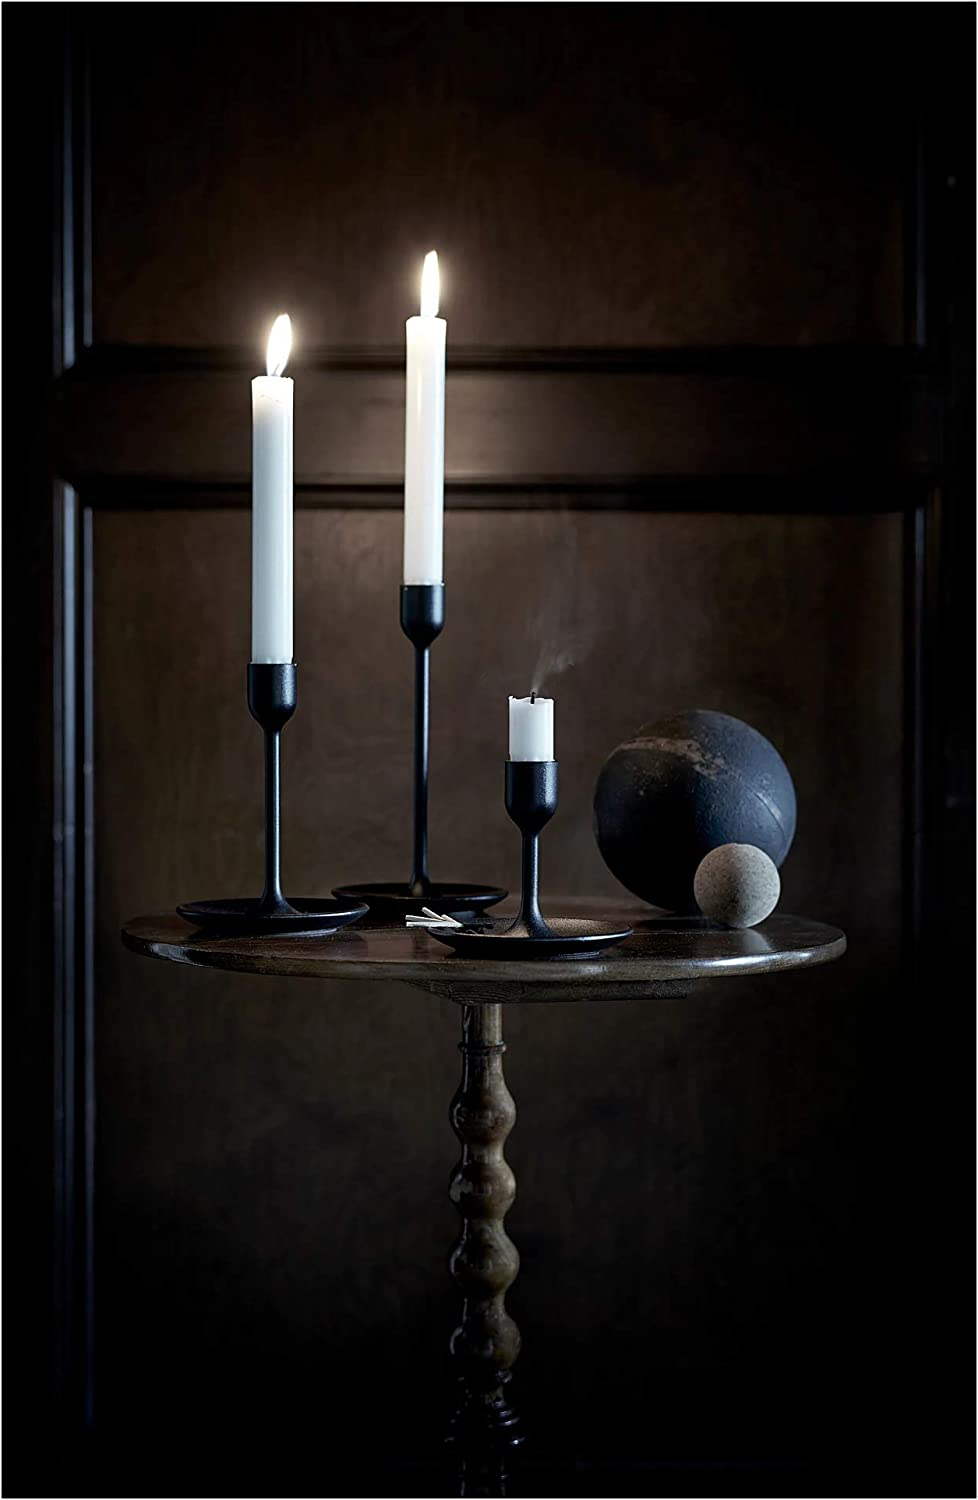 12 cm Weight 18 cm Height 0.58 kg 21 cm Width Length Set of 3 Black Package Size /& Weight Candlestick